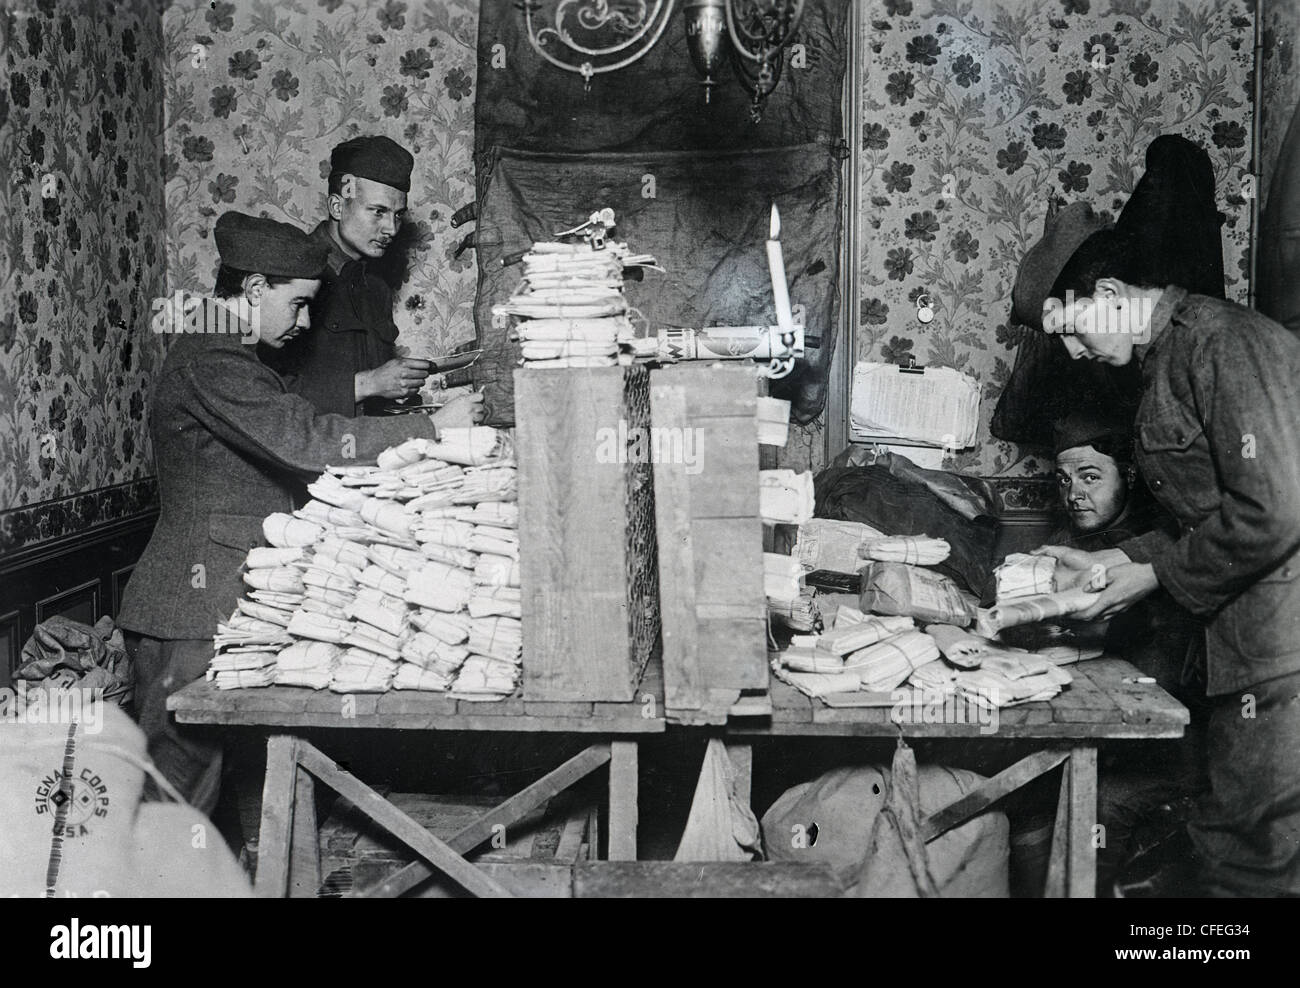 27th Division boys sorting out the mail at Crobie. WWI 1918 - Stock Image